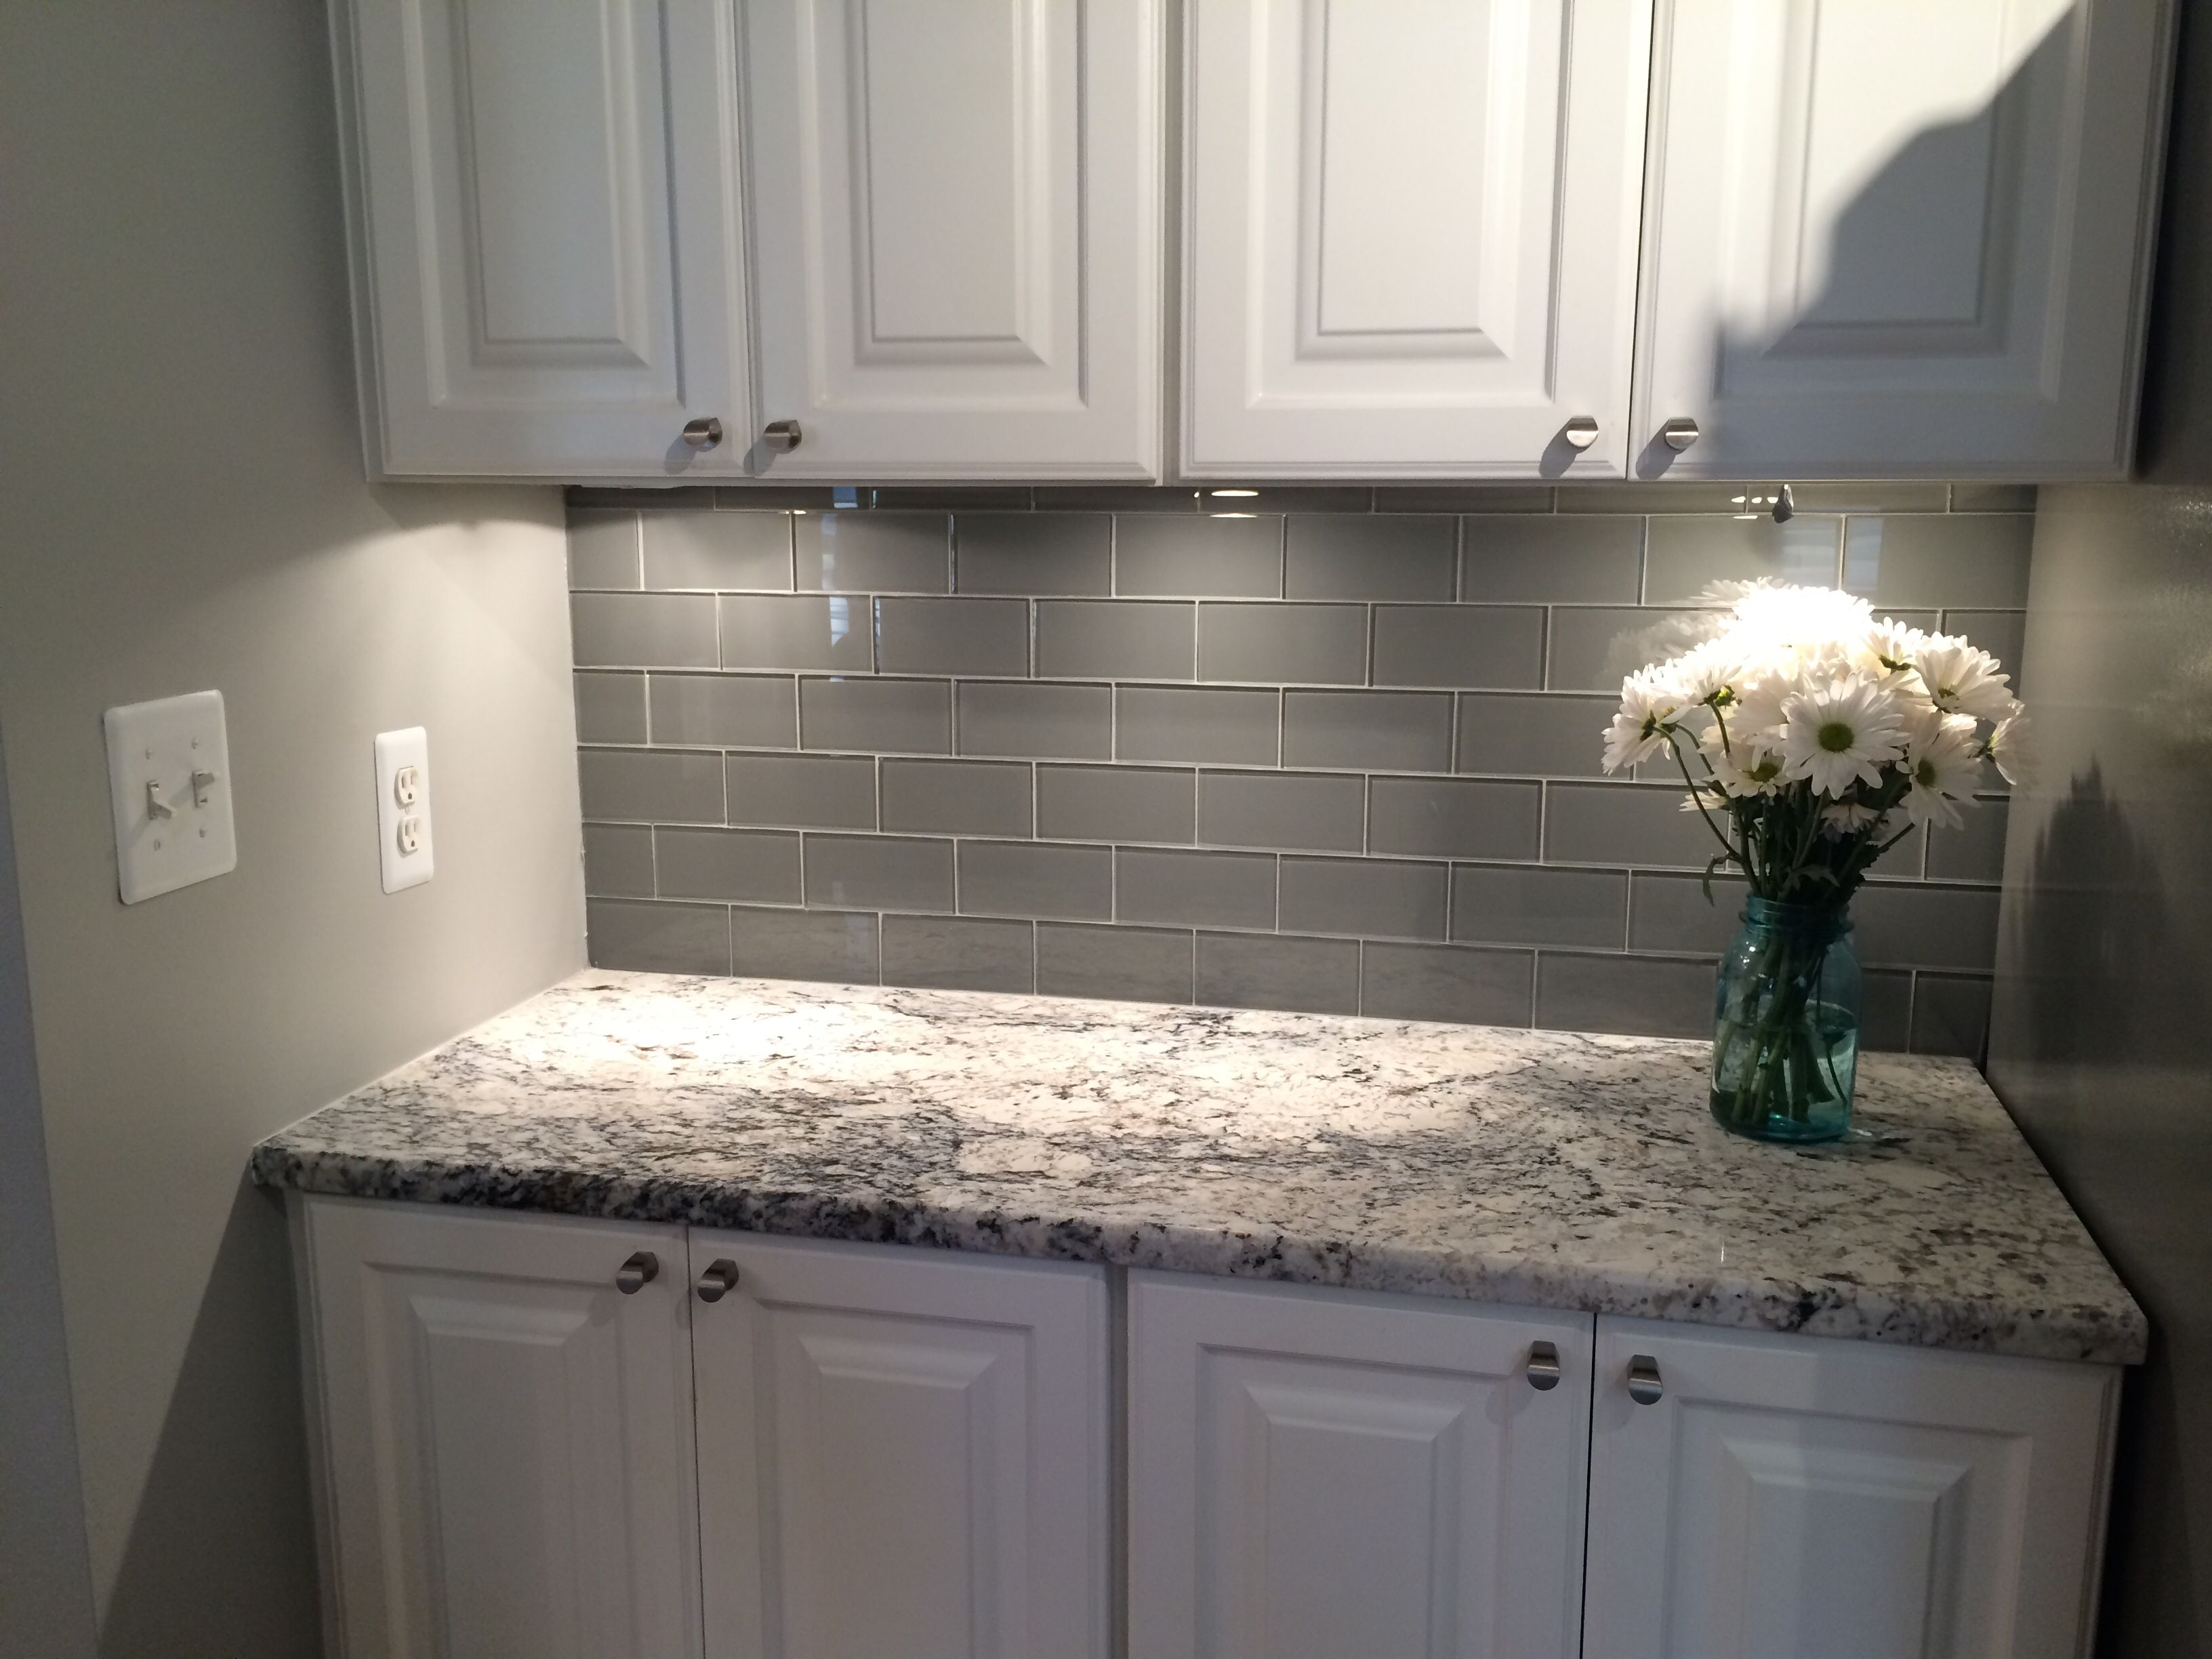 Grey Kitchen Backsplash Cabinets For Less Reviews Modern Design With Azul Platino Granite Countertop White Paint Cabinet Also Tile